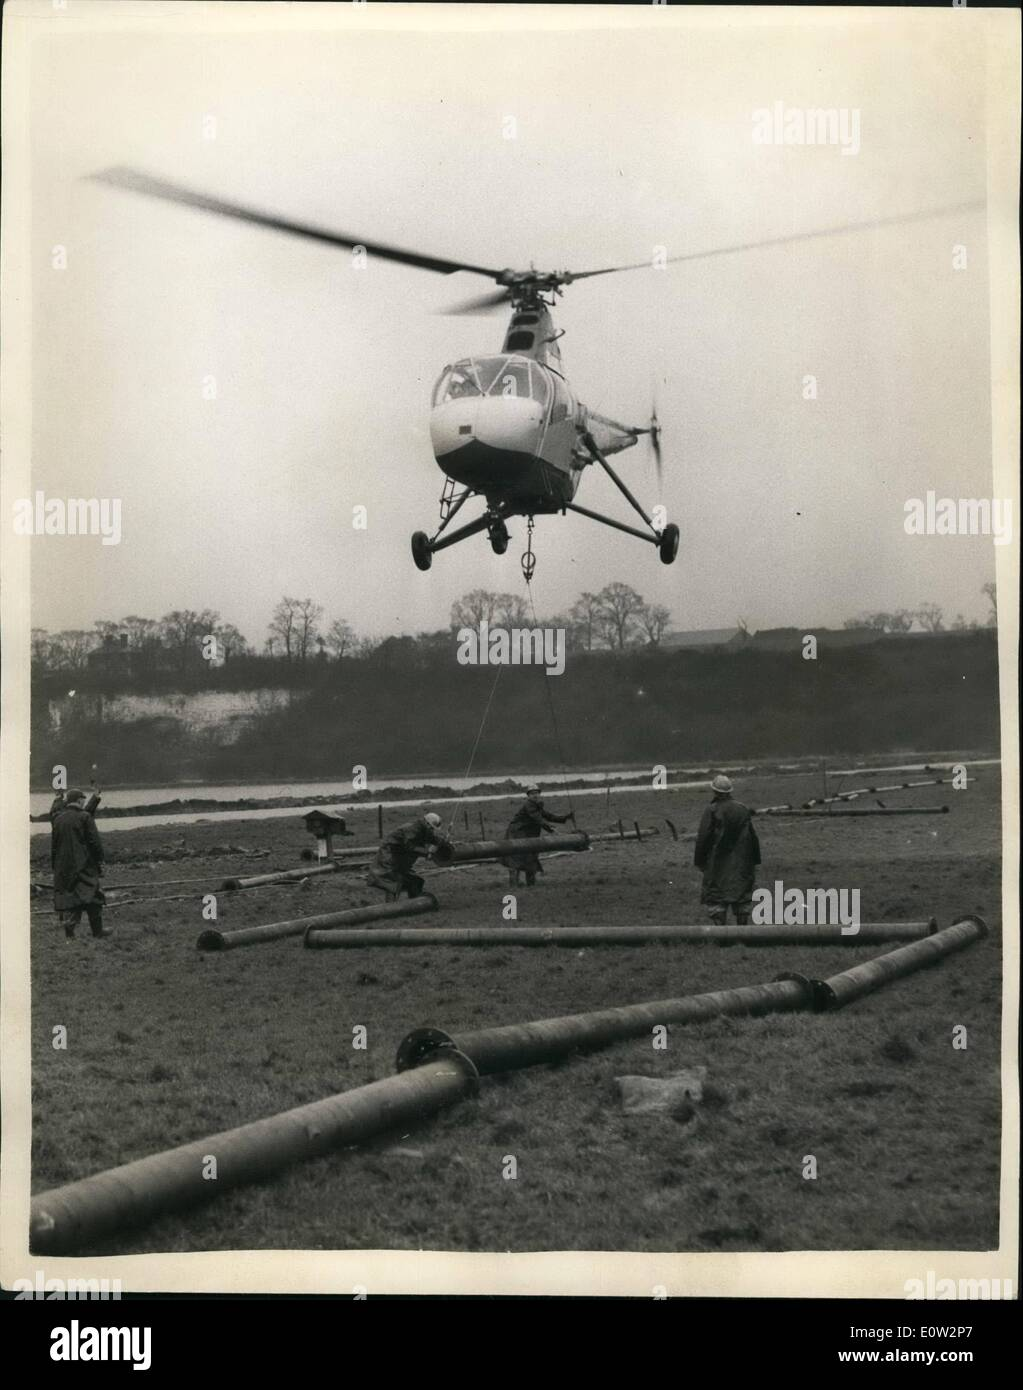 Jan. 01, 1961 - Operation Pipeline. Experiment by Helicopter over the Marshes of Kent.: An experiment was Helicopter carried out across the Thames marshes at Cliffo, near Gravesond, Kent with the laying of steel pipe-with the aid of a helicopter. Half a mile of 8'' nominal bore stool pipe, made up of 100 flanged lengths - each 20' long and weighing 4 Cwt. The task was carried out by a British United Airways Widgeon - piloted by ex-Navy pilot Mike Perkis. The job - which would normally take ten to fourteen days - was completed today in a matter of hours - Stock Image